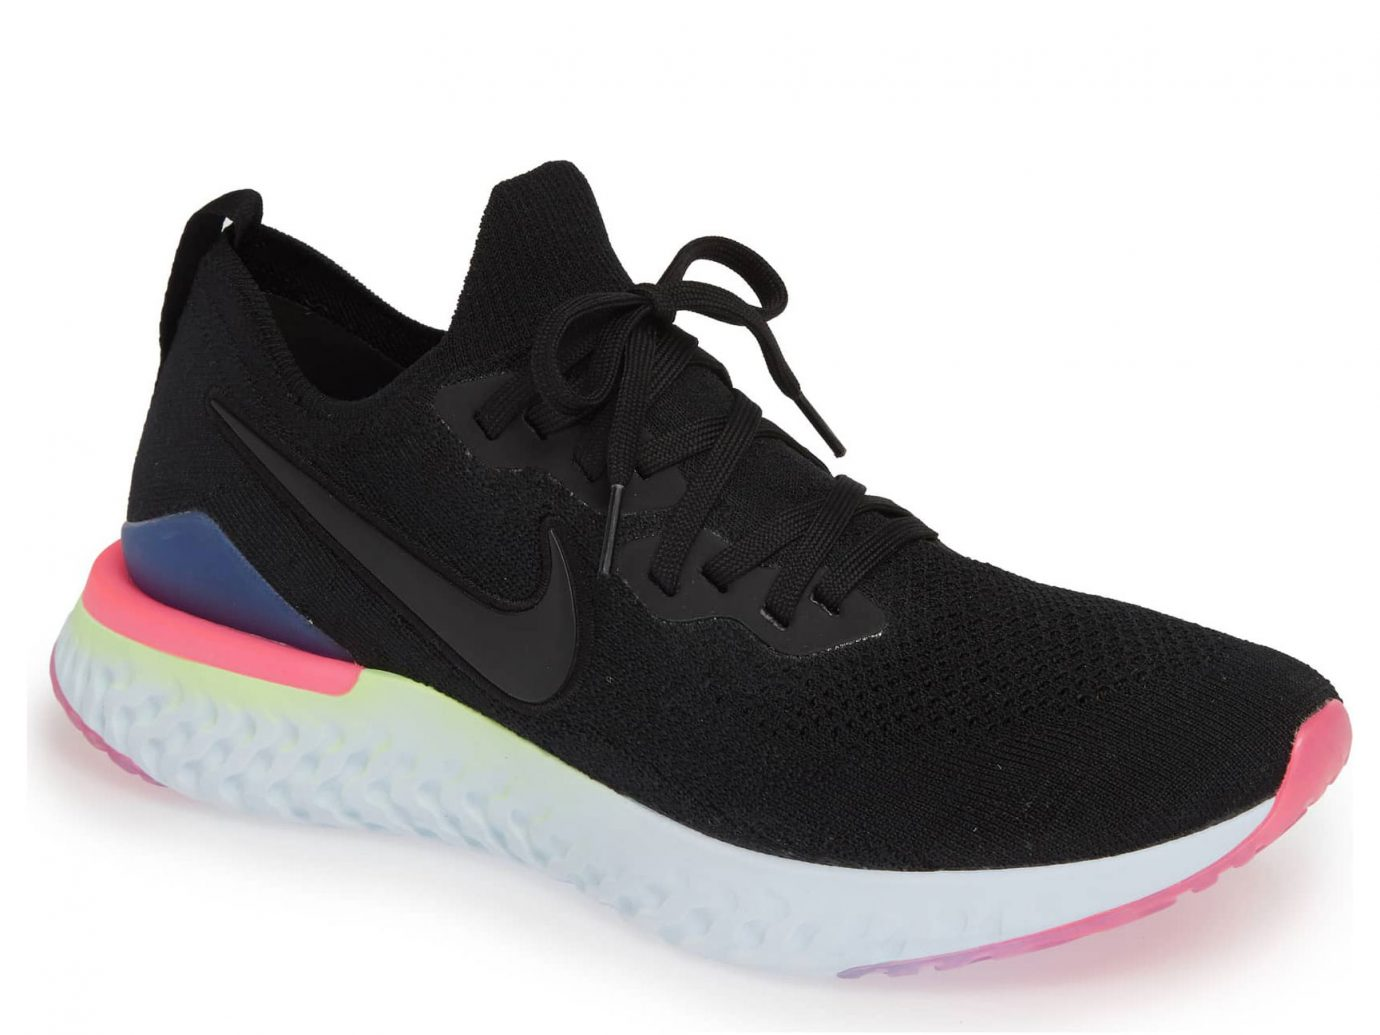 Nike Epic React Flyknit 2 Running Shoe